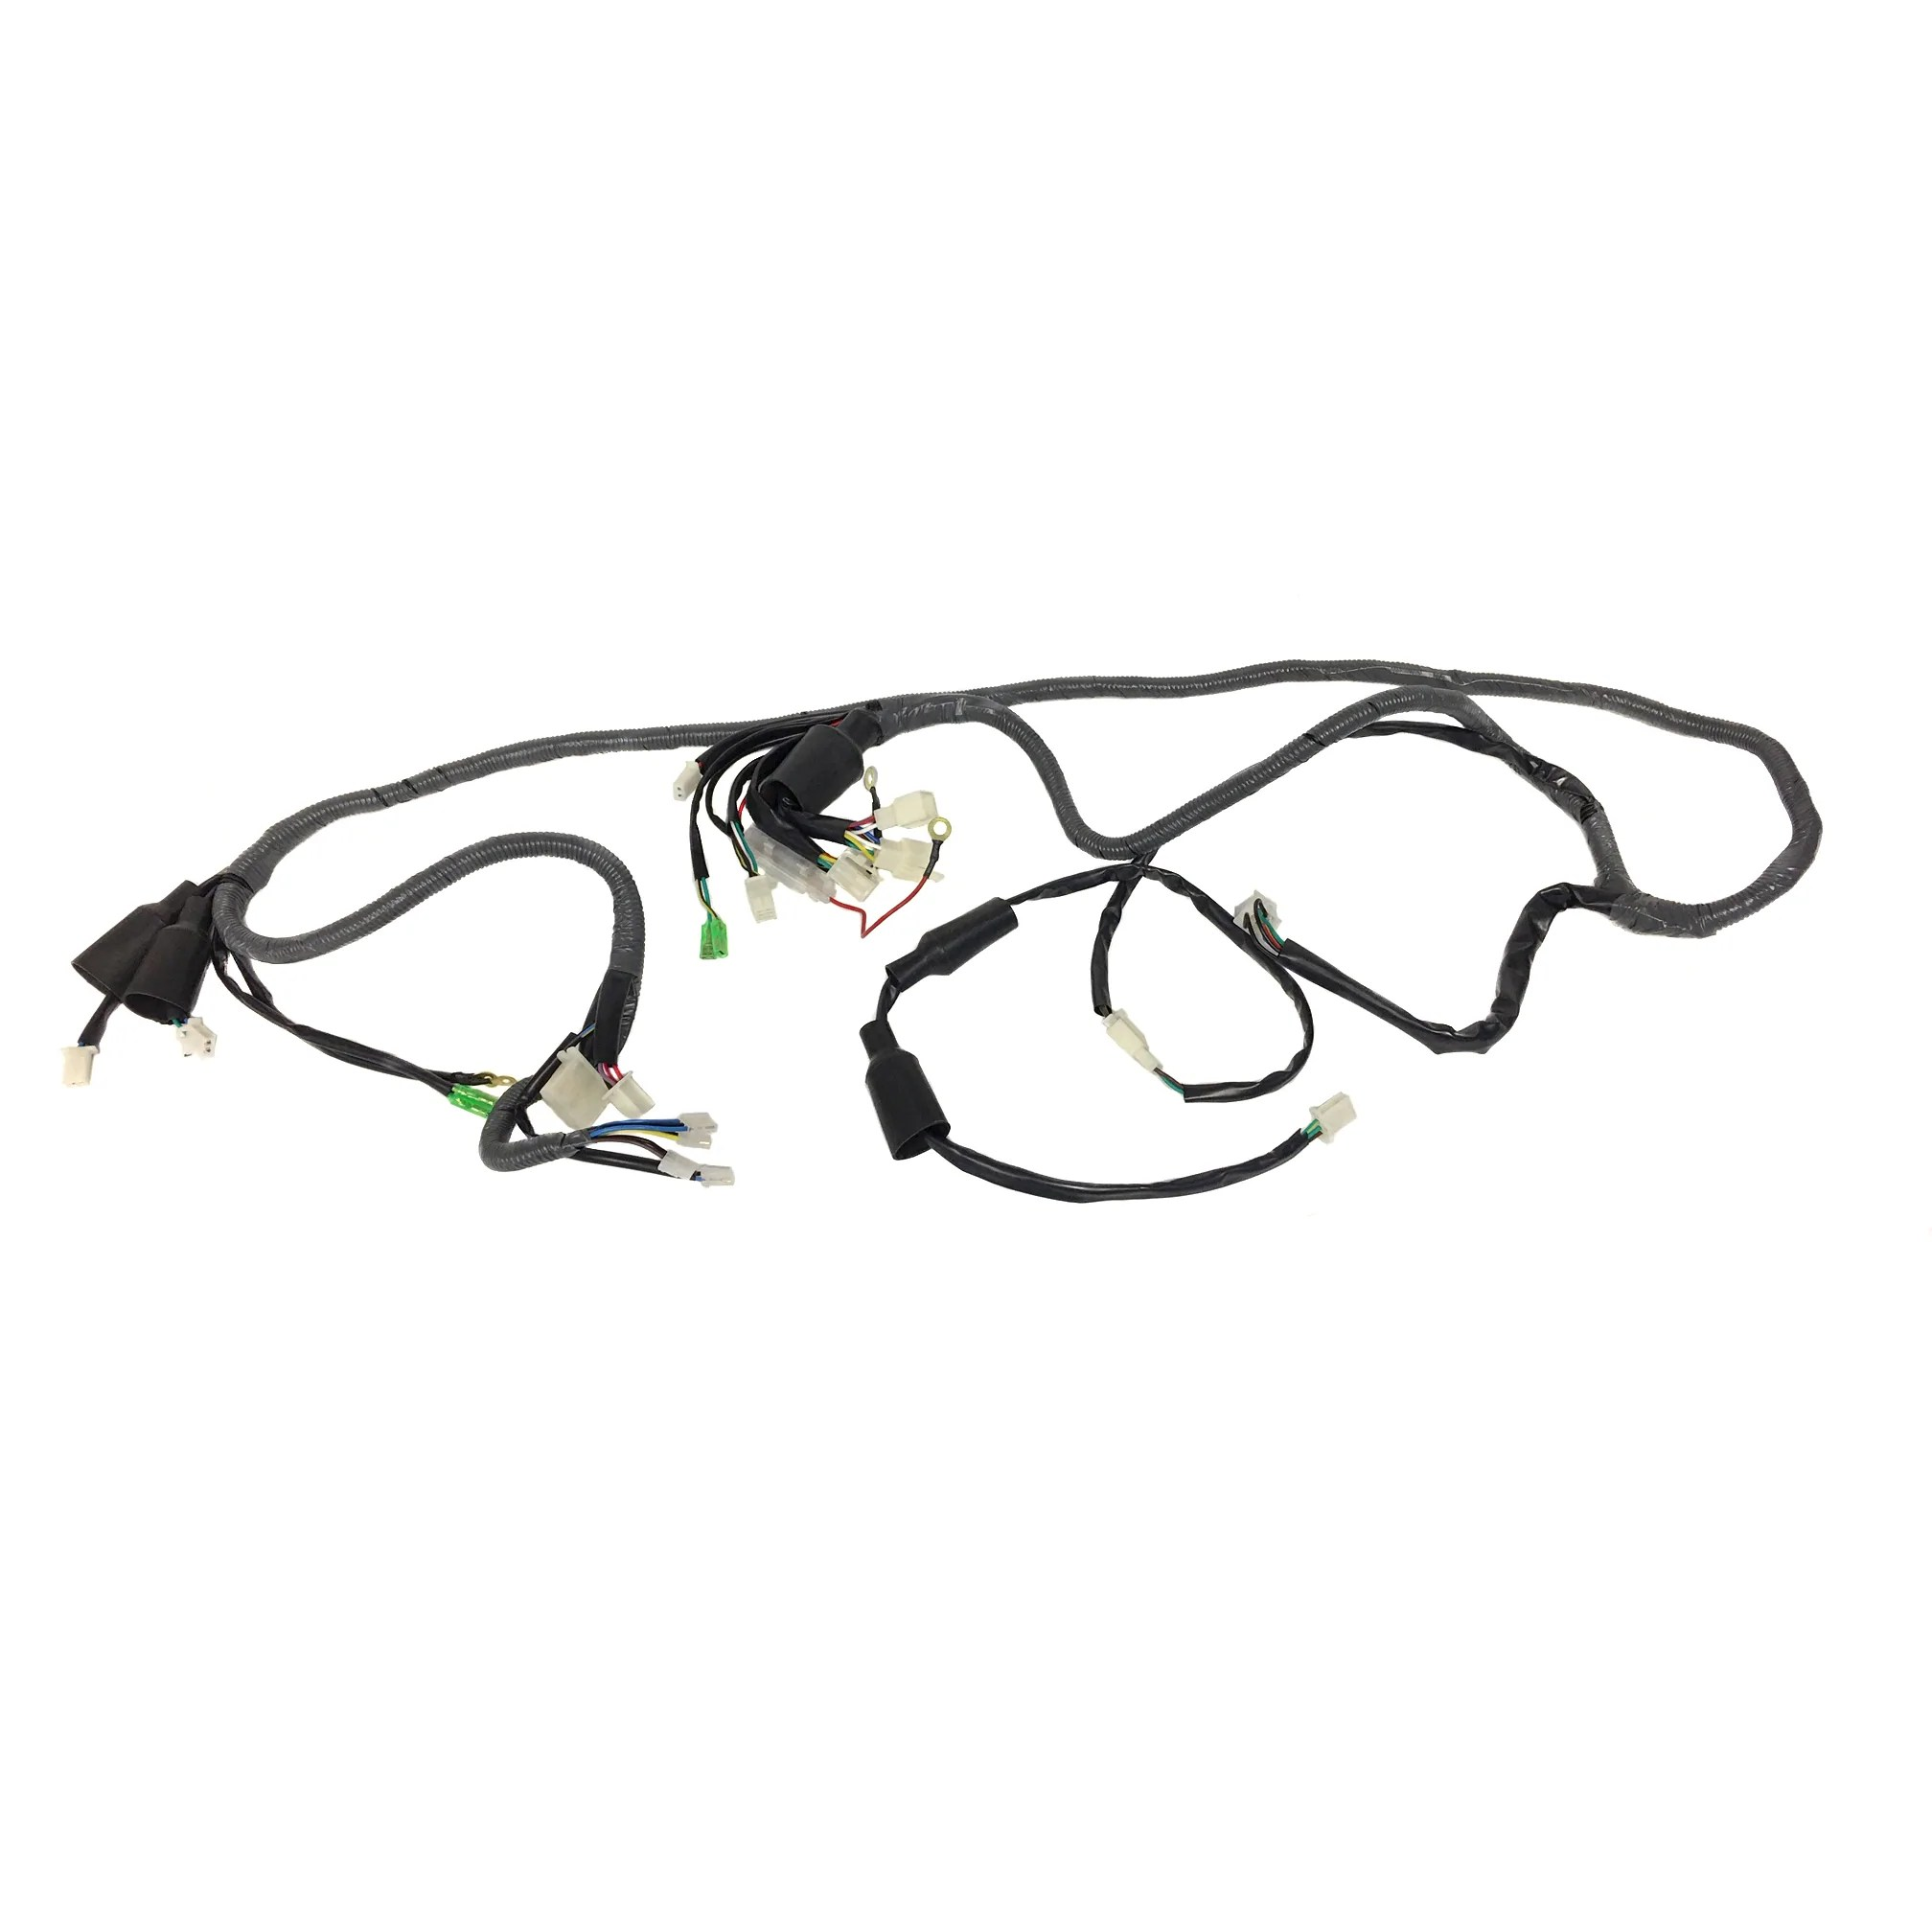 small resolution of wiring harness for tao tao 110cc gk110 go kart vmc chinese parts